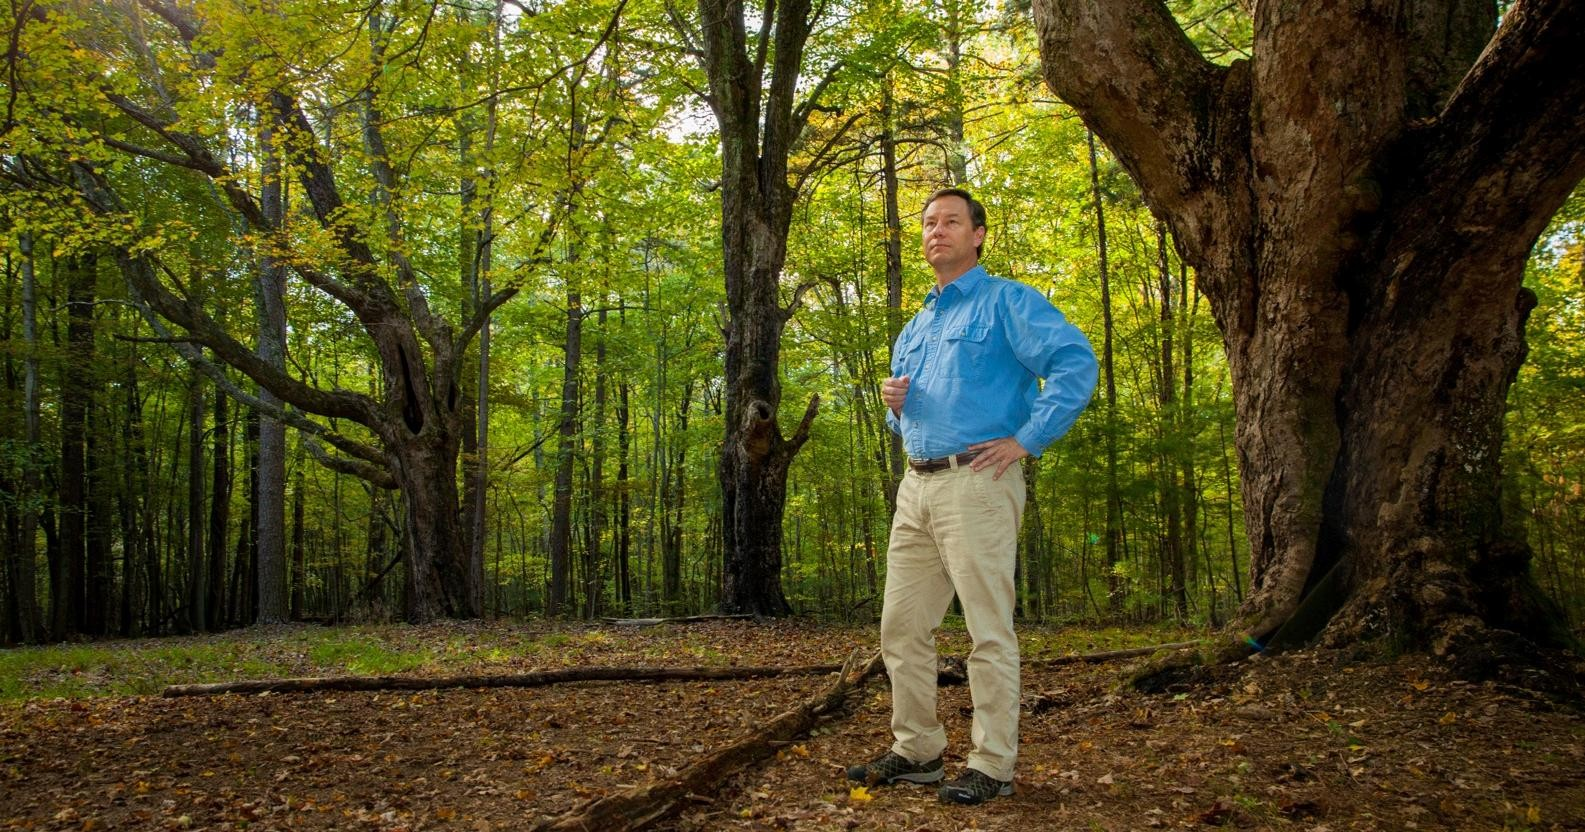 History Professor John Willis stands beneath the three towering sugar maples that likely shaded the farmhouse at King's Farm. Photo by Buck Butler